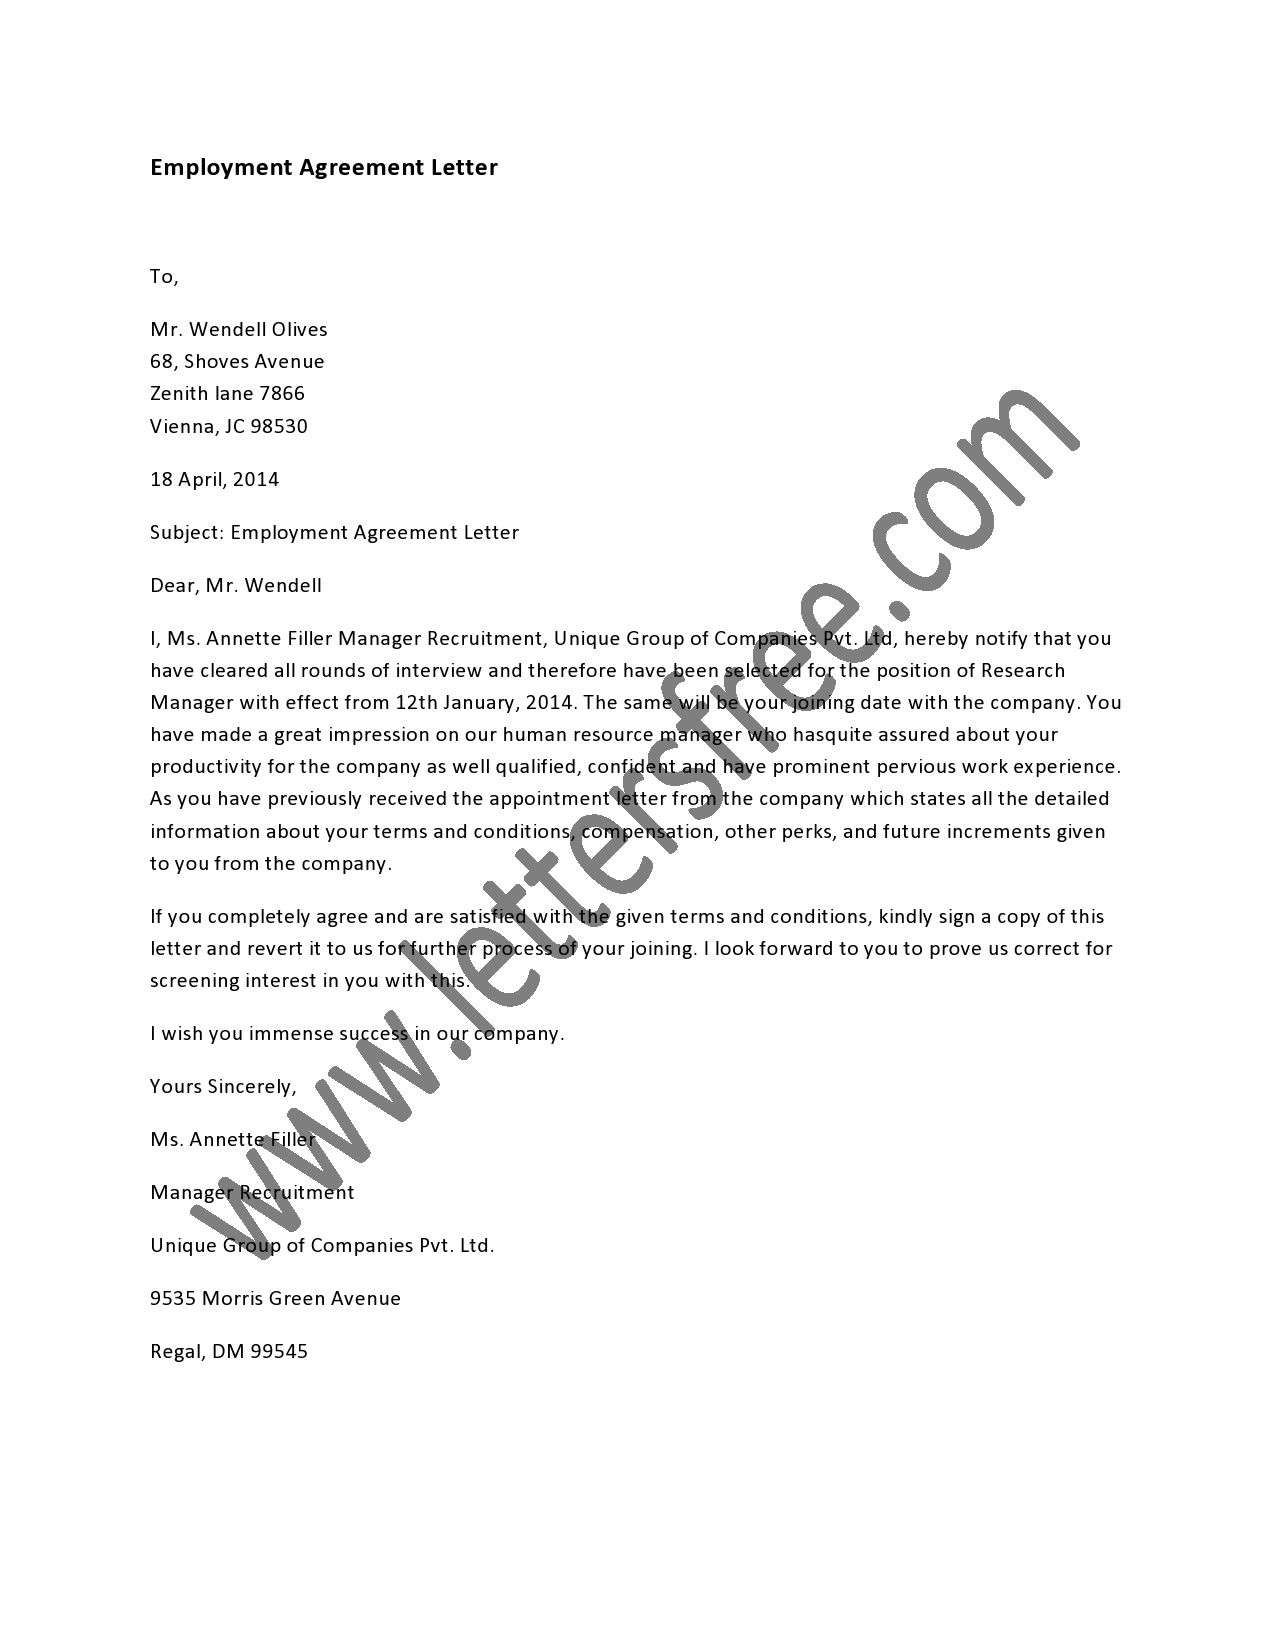 employment agreement letter sample agreement letters pinterest